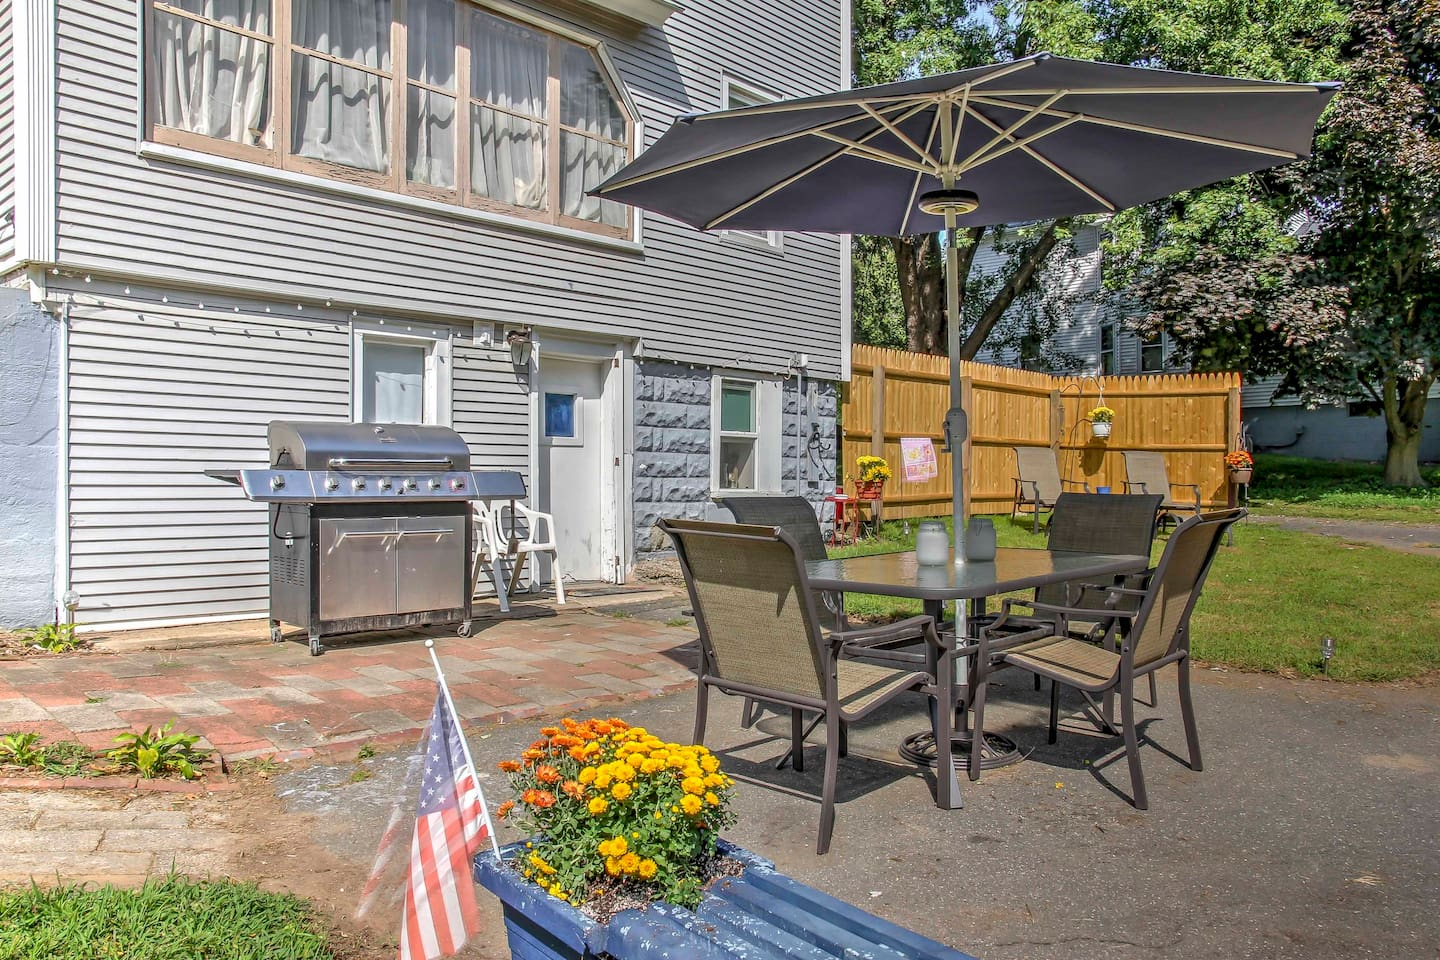 Fire up the grill for a BBQ, and enjoy in the shade of the patio table umbrella!